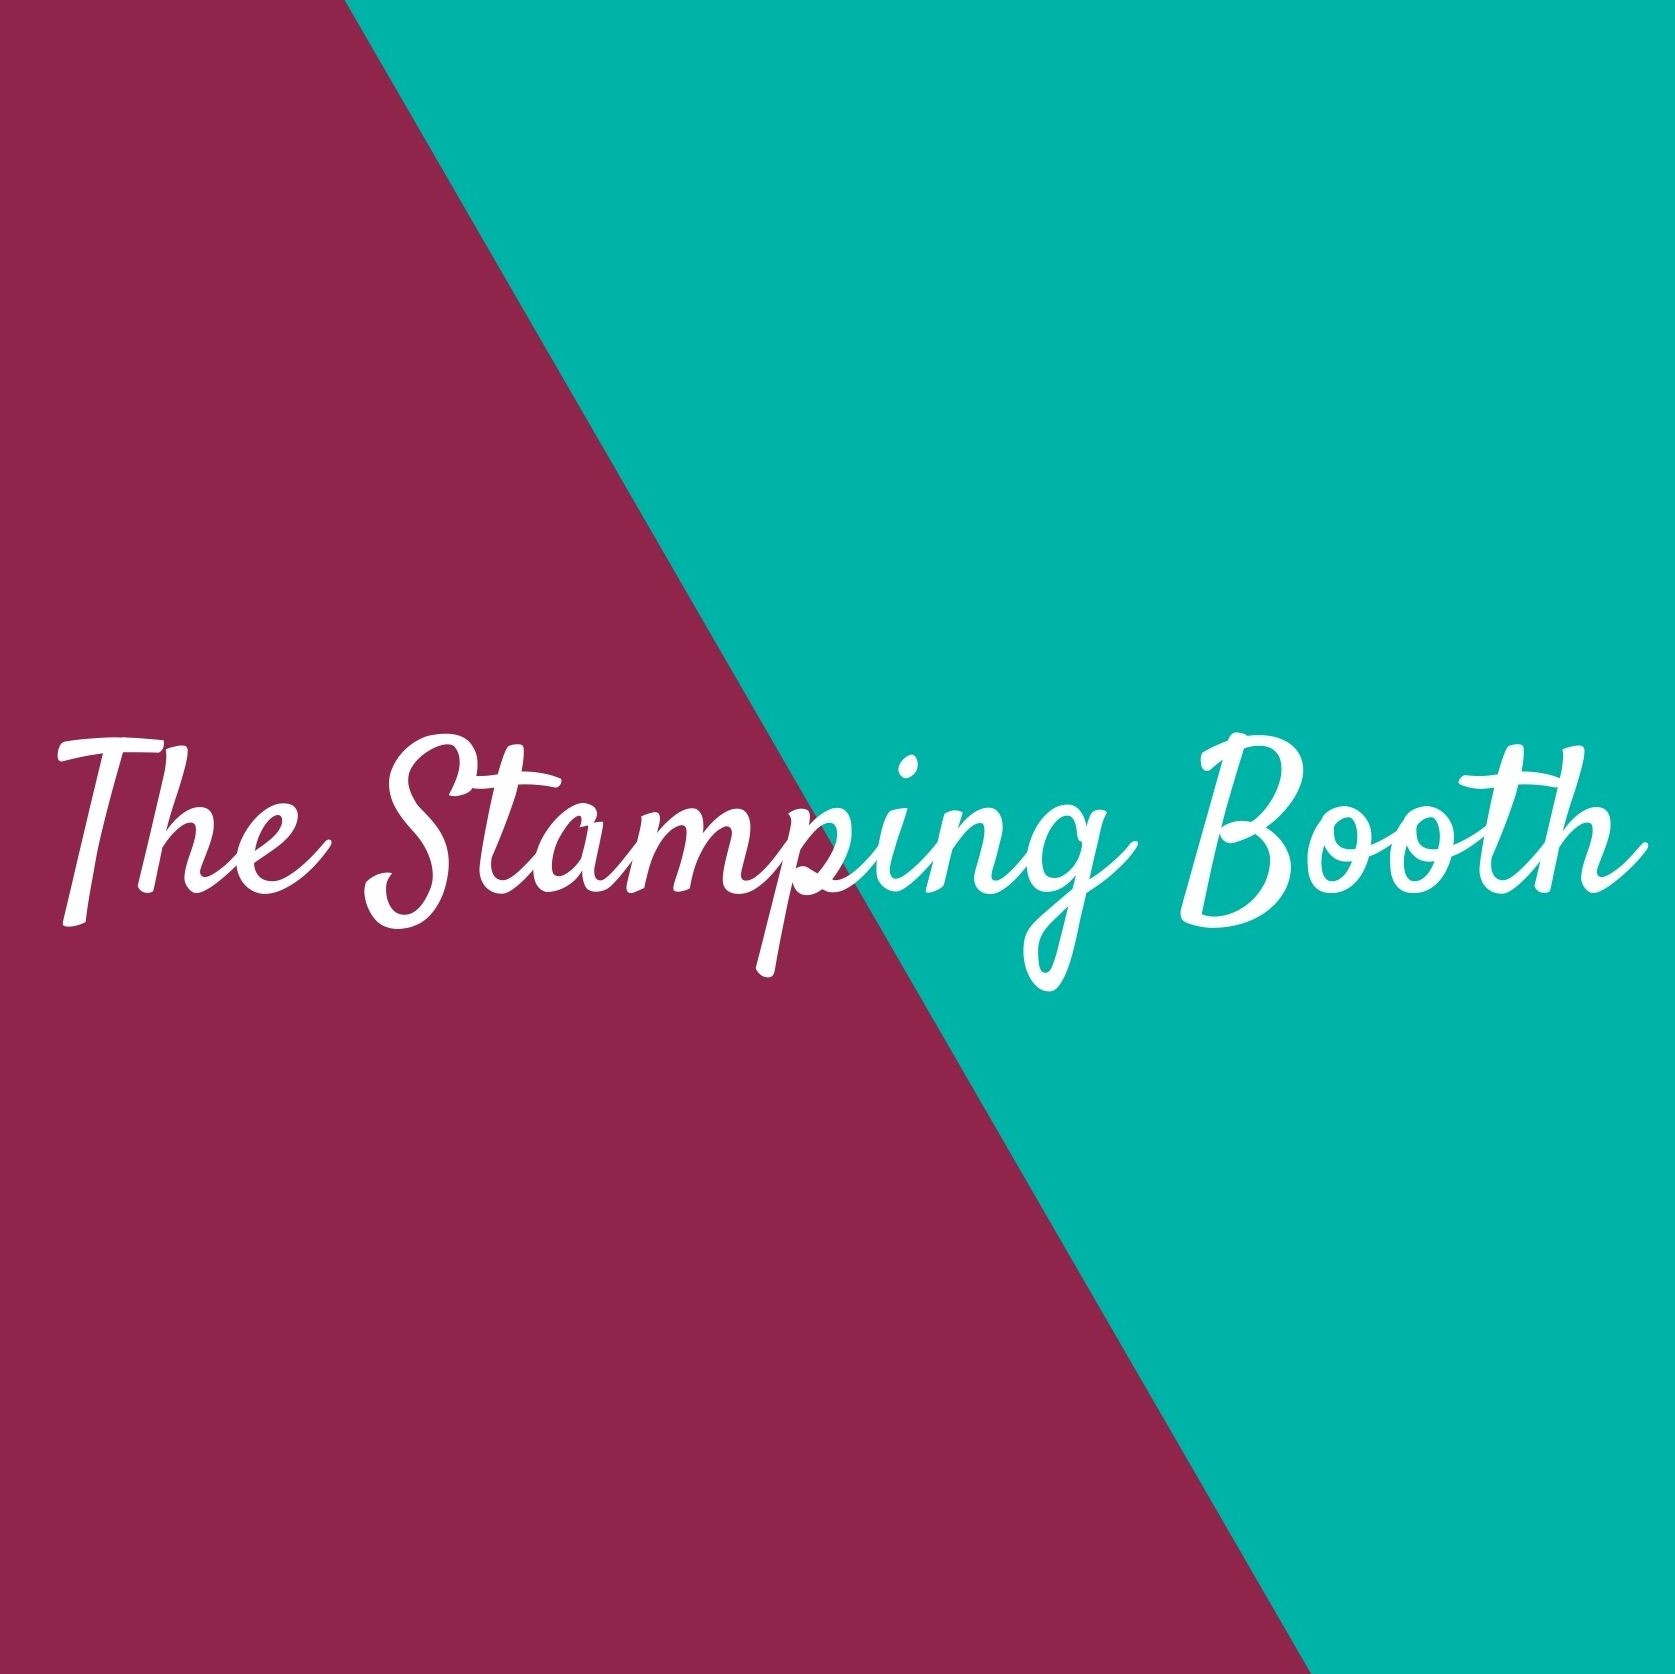 The Stamping Booth